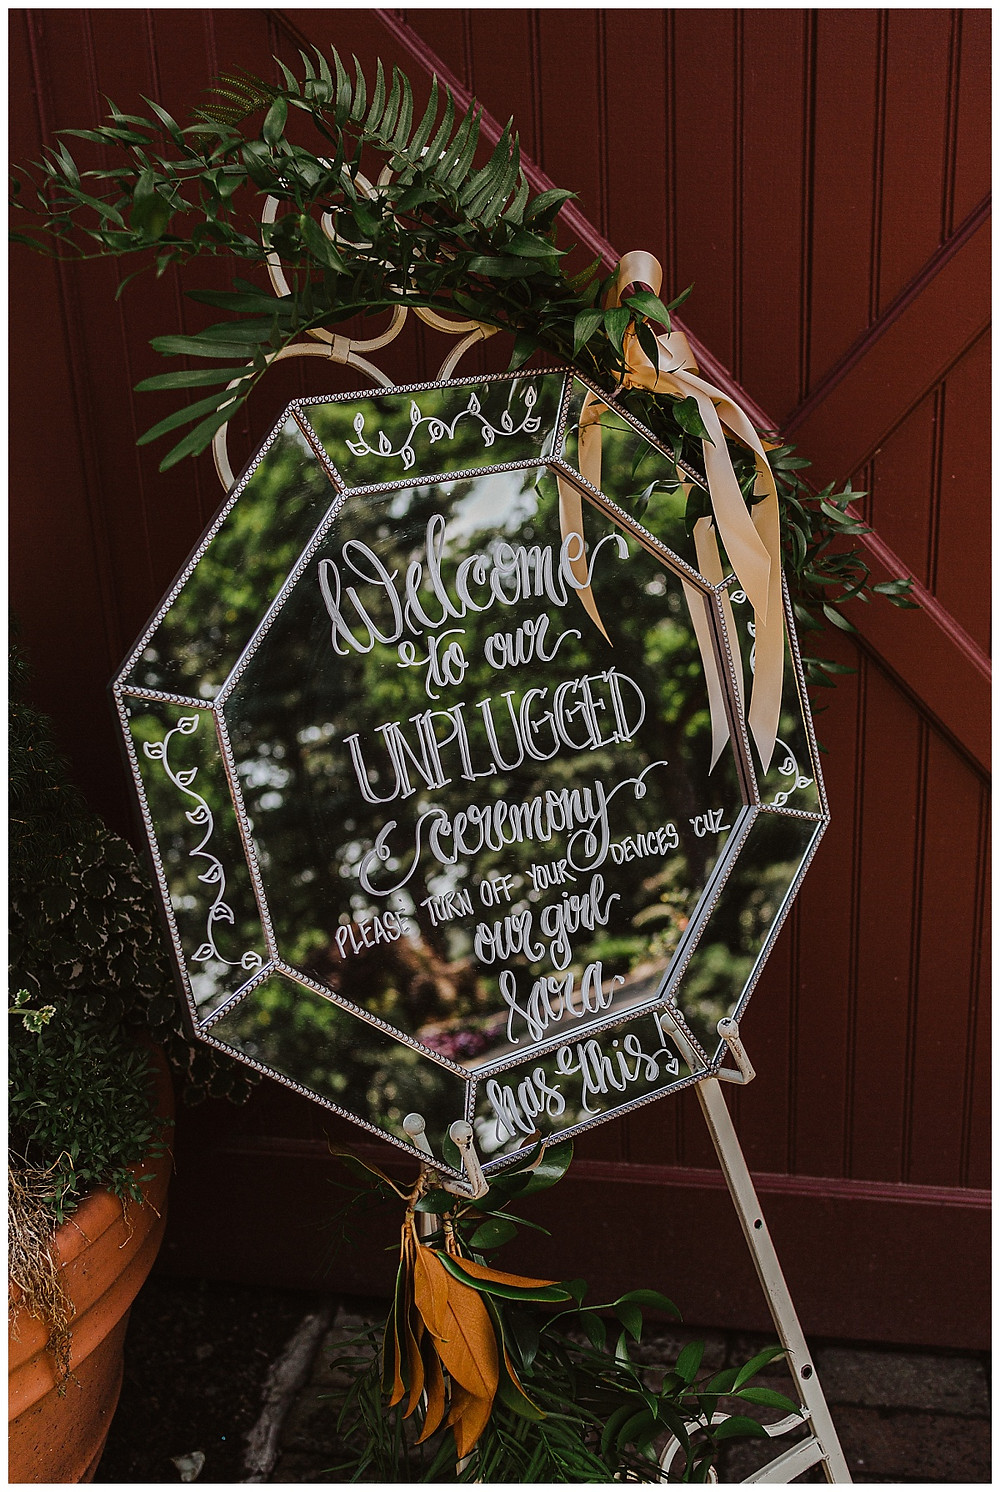 Unplugged Ceremony Mirror Sign